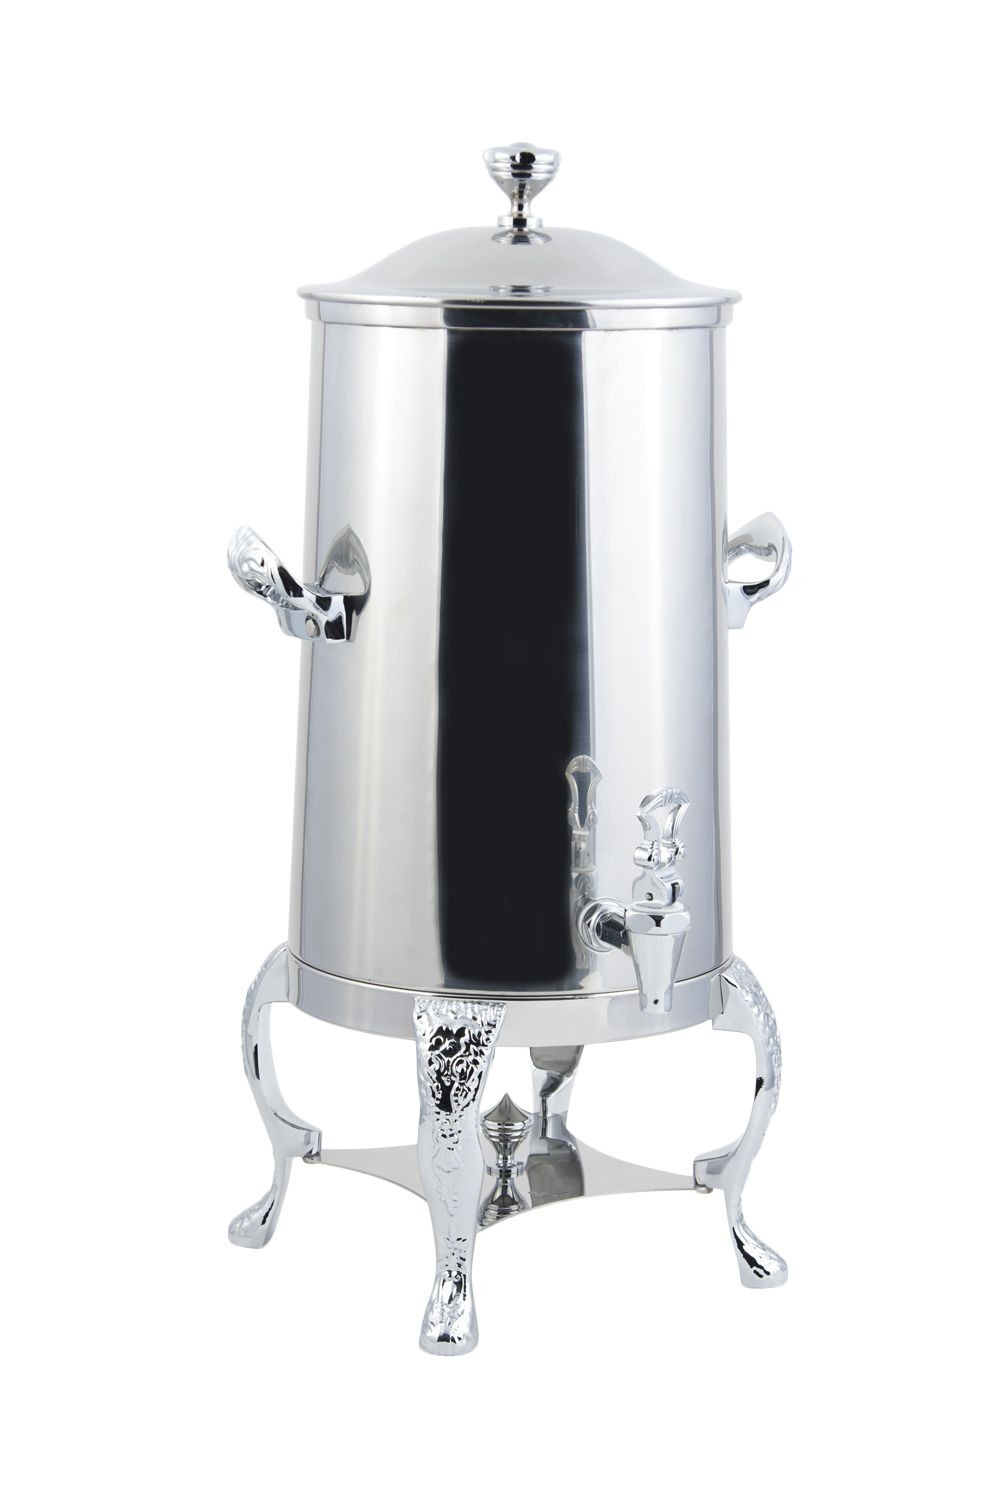 Bon Chef 47003CH Renaissance Insulated Coffee Urn with Chrome Trim, 3 Gallon